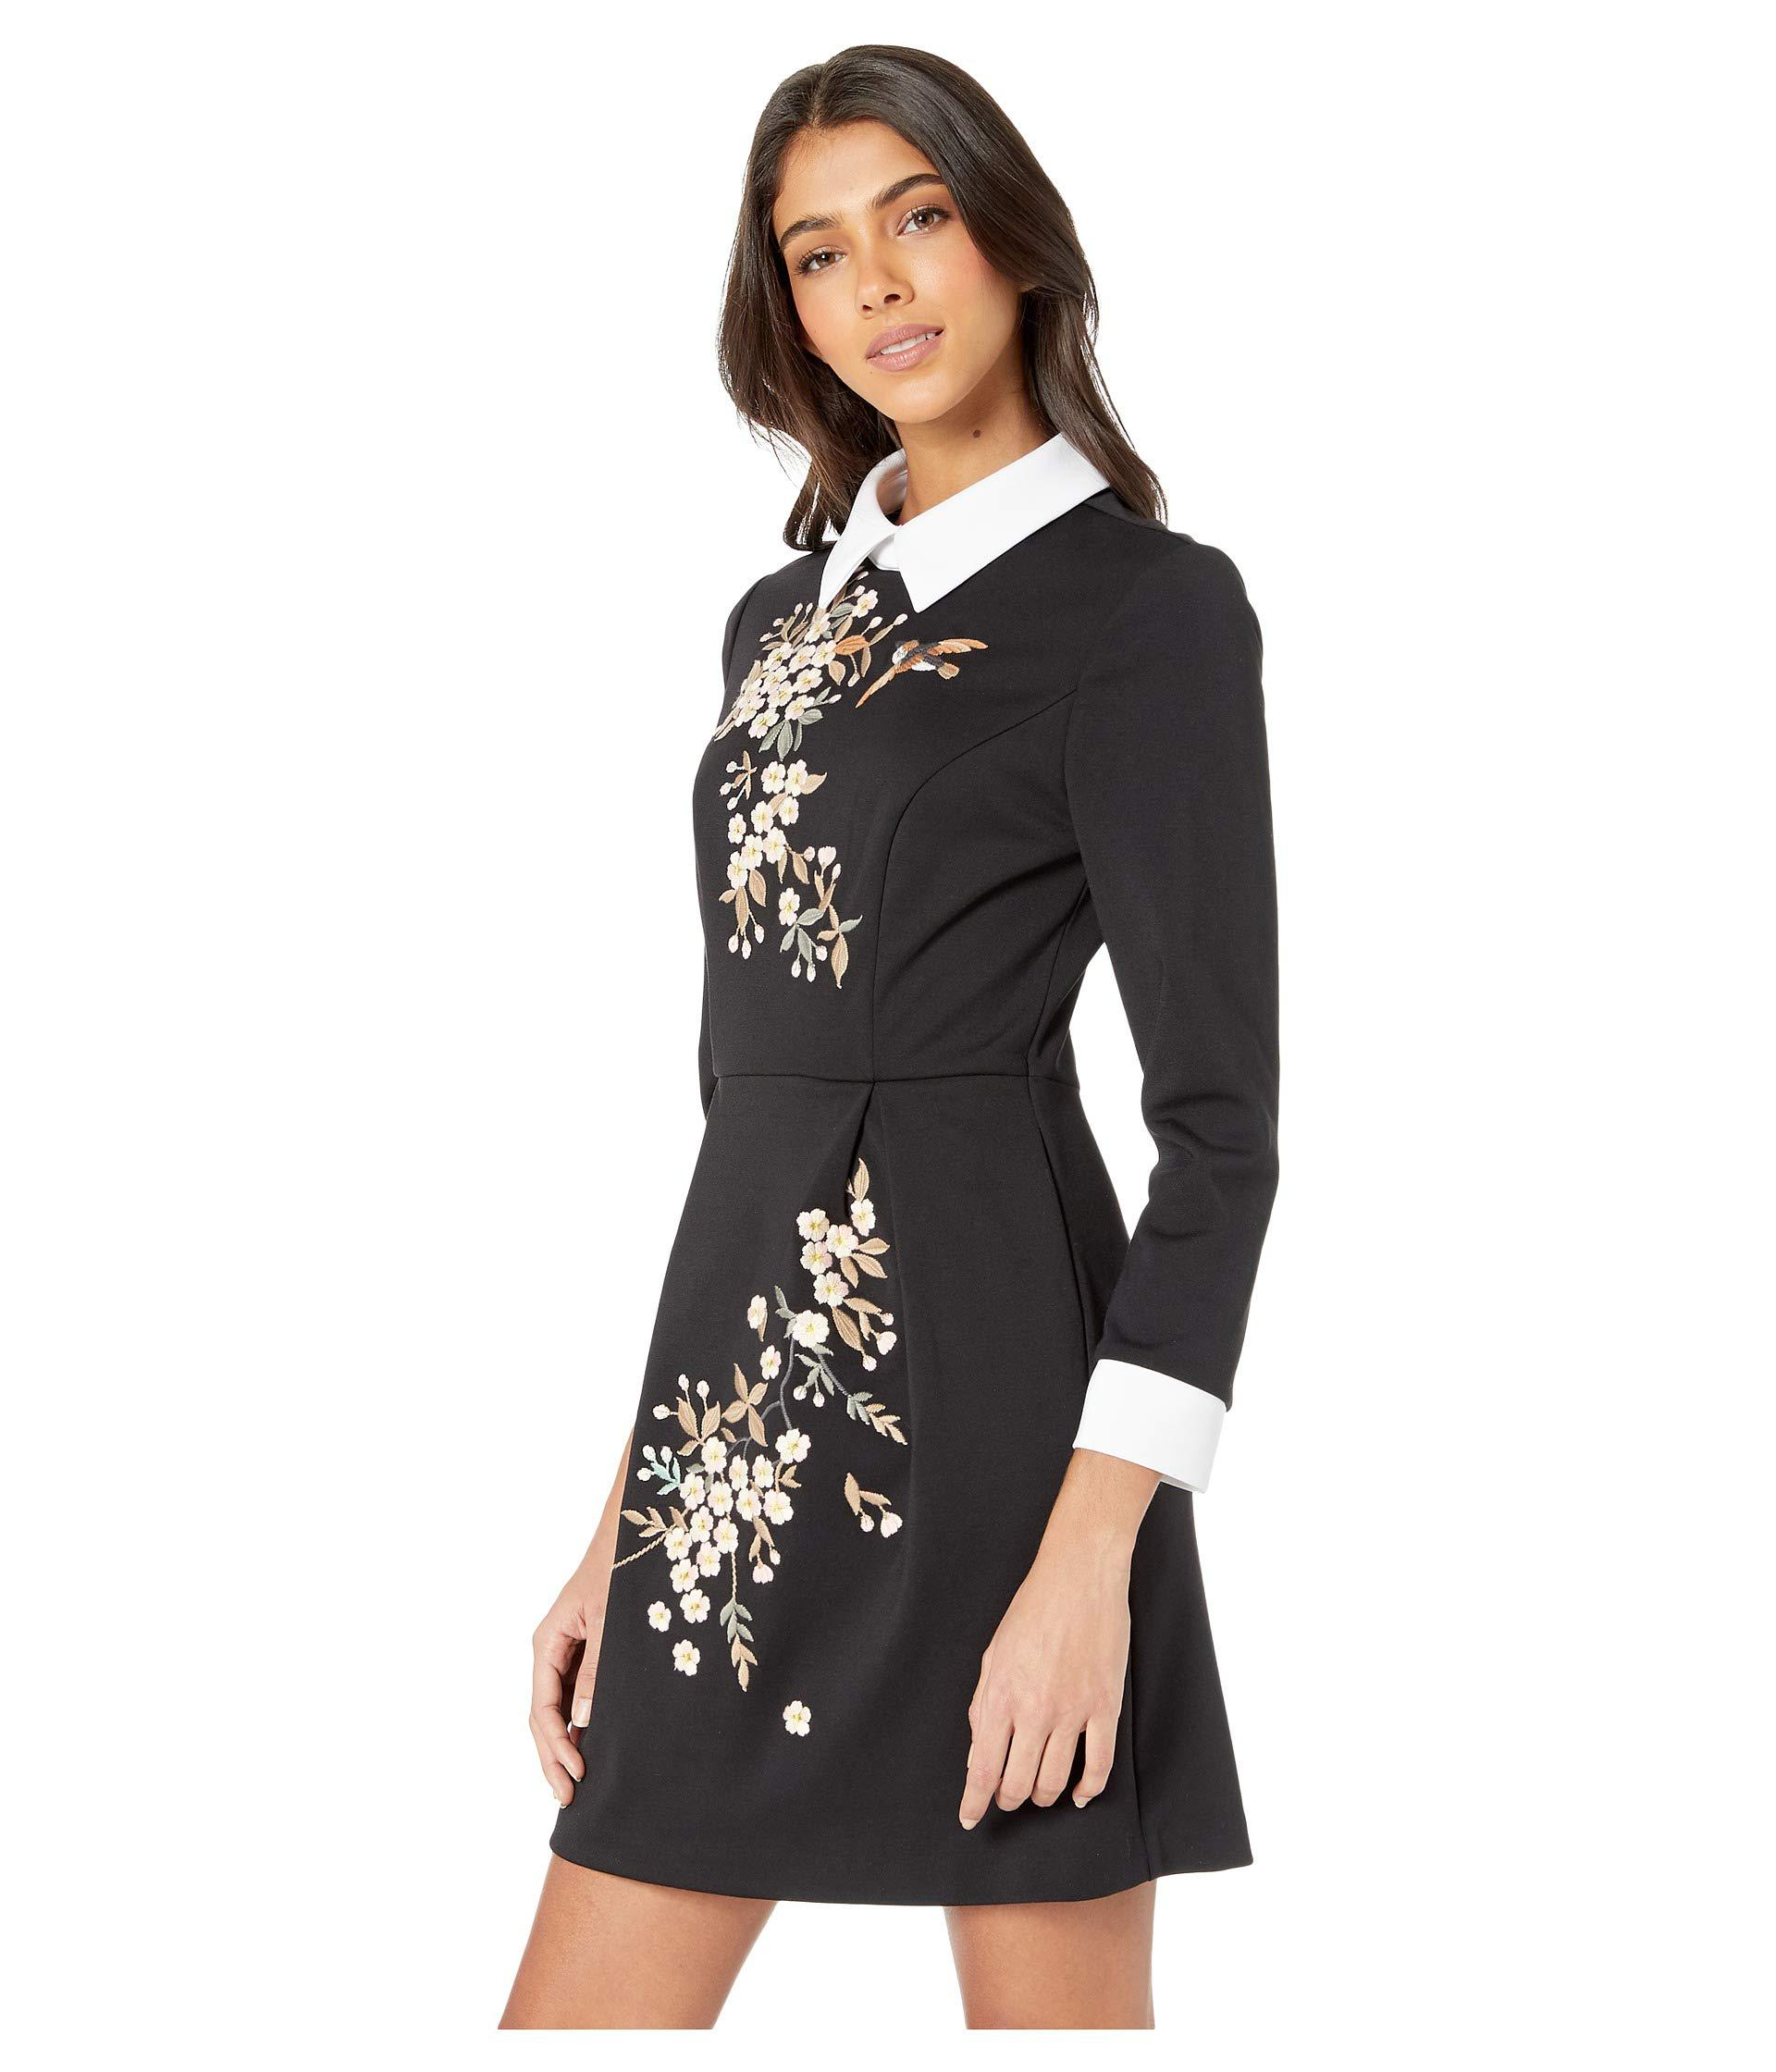 dd373620ffb Ted Baker Ellan Graceful Collared Dress (black) Women s Dress in ...